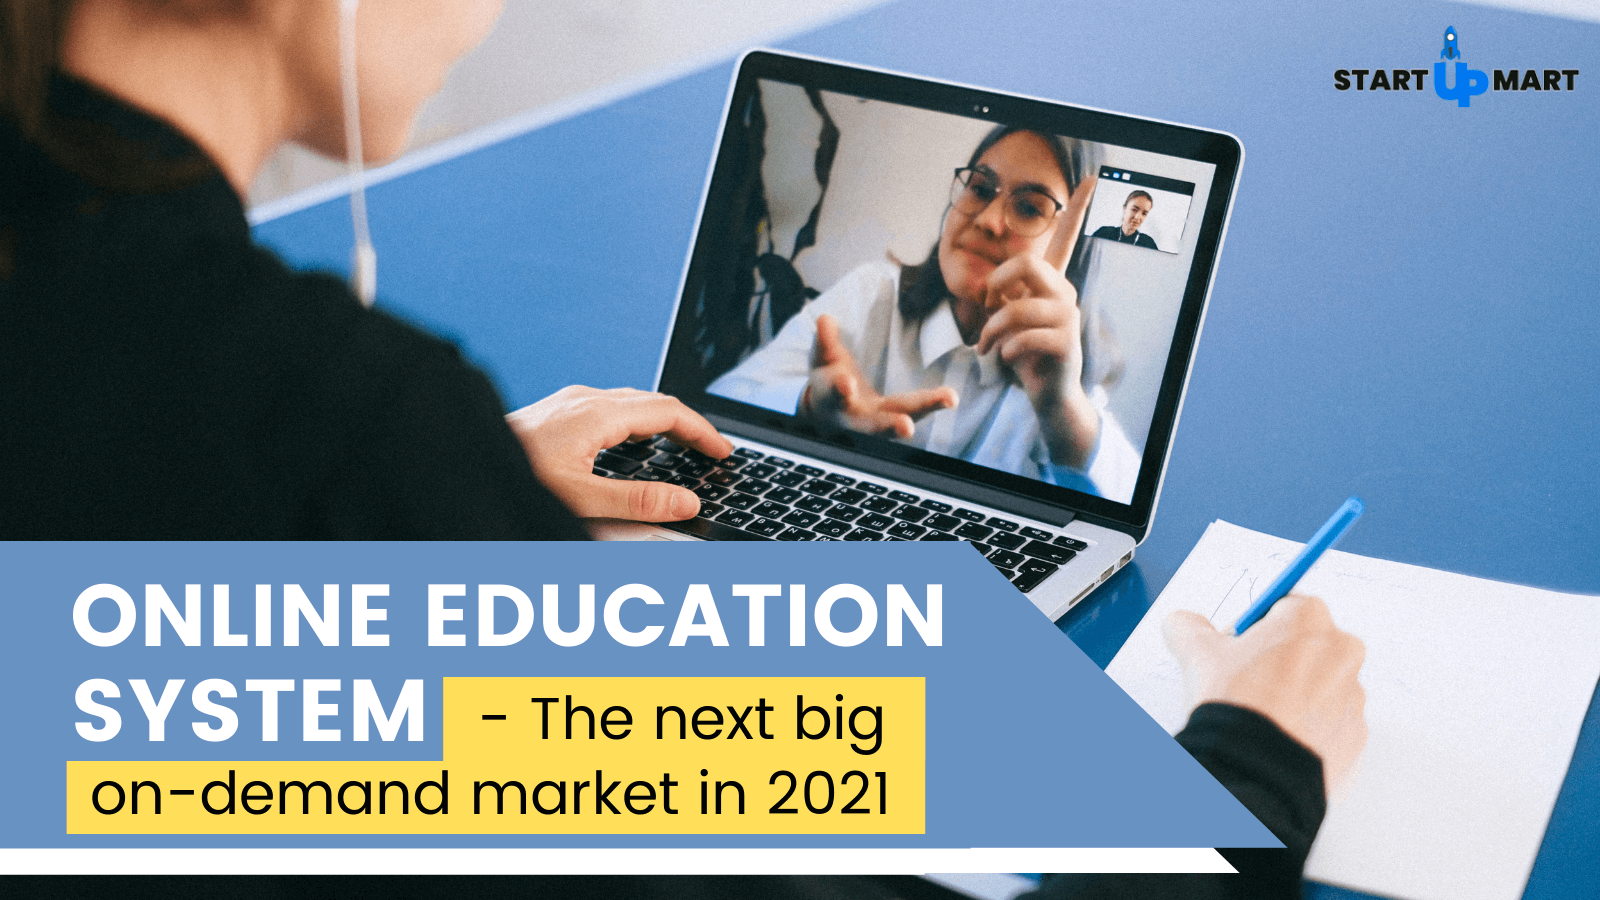 The Next Big On-Demand Market in 2021 - Online Education System